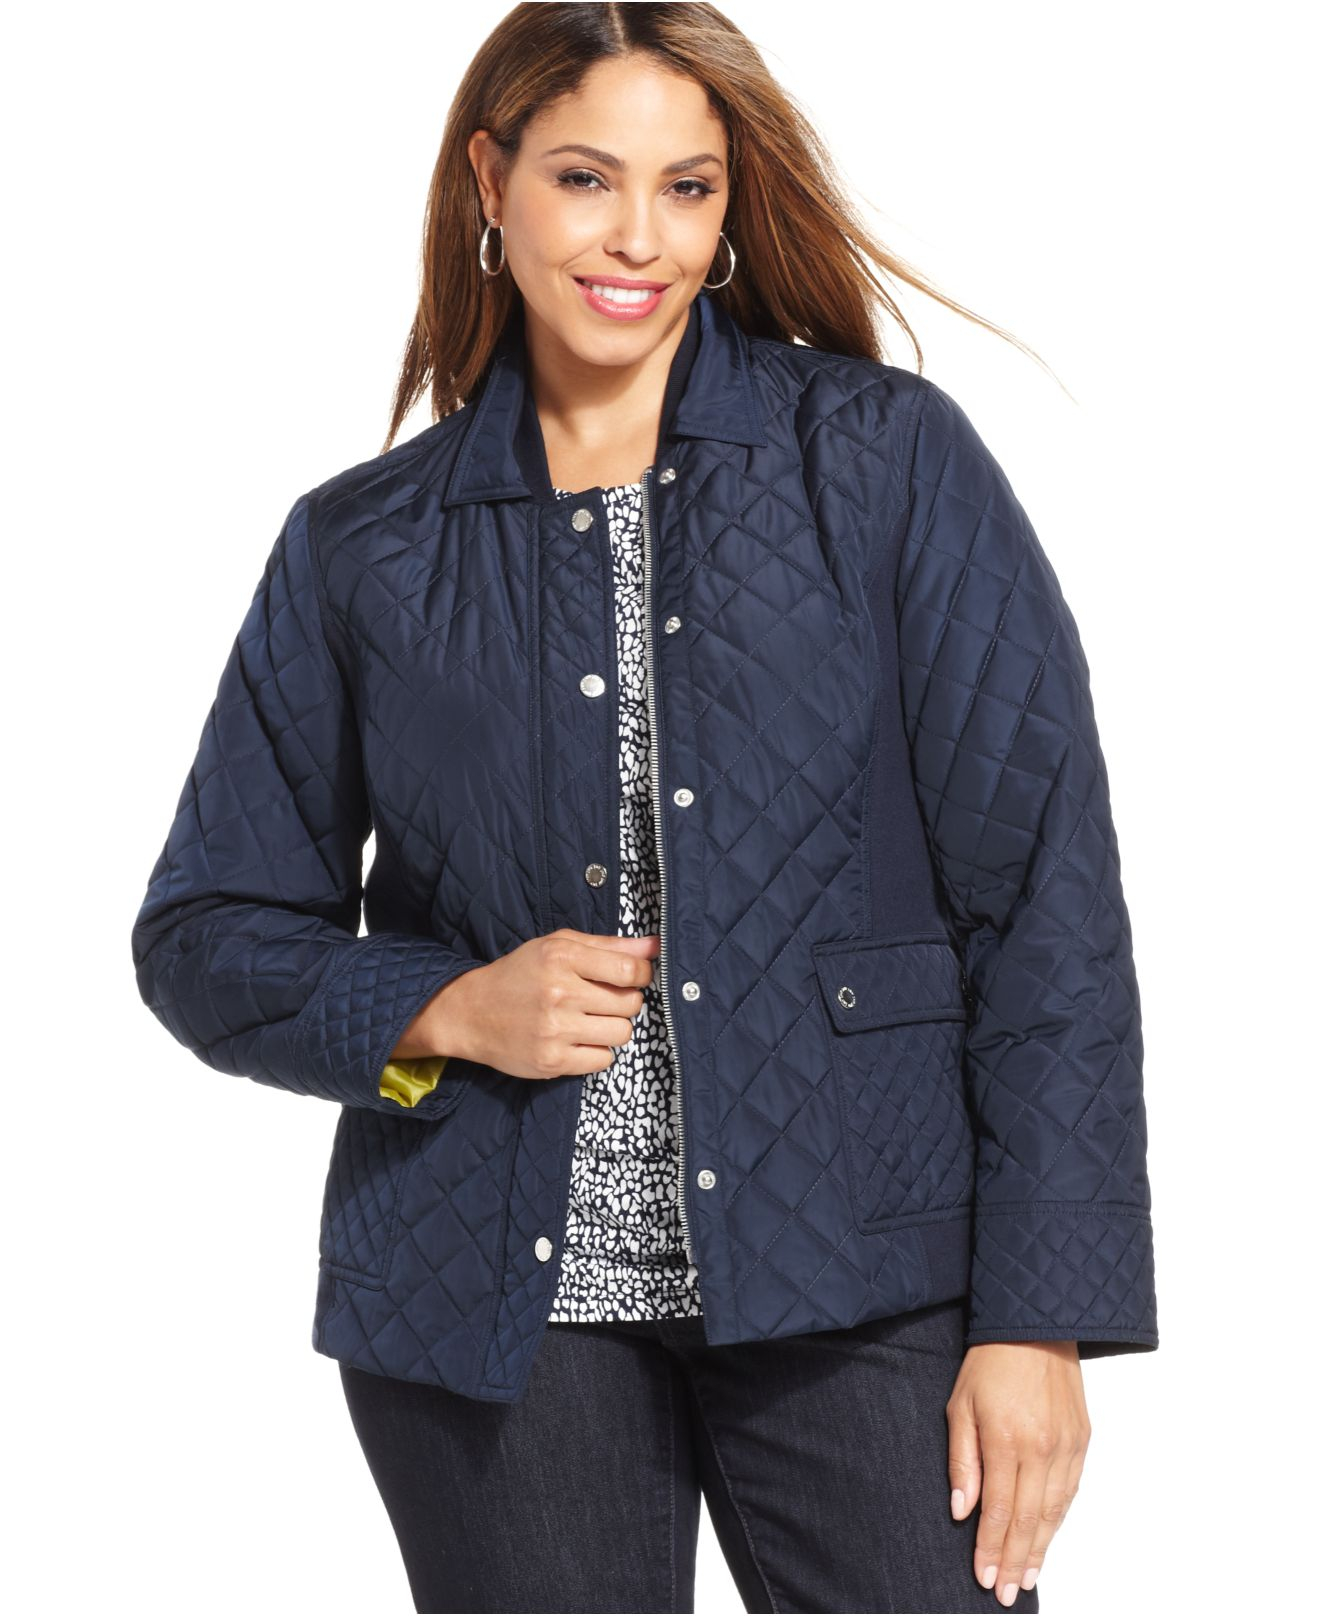 Signature Plus Size Quilted Jacket